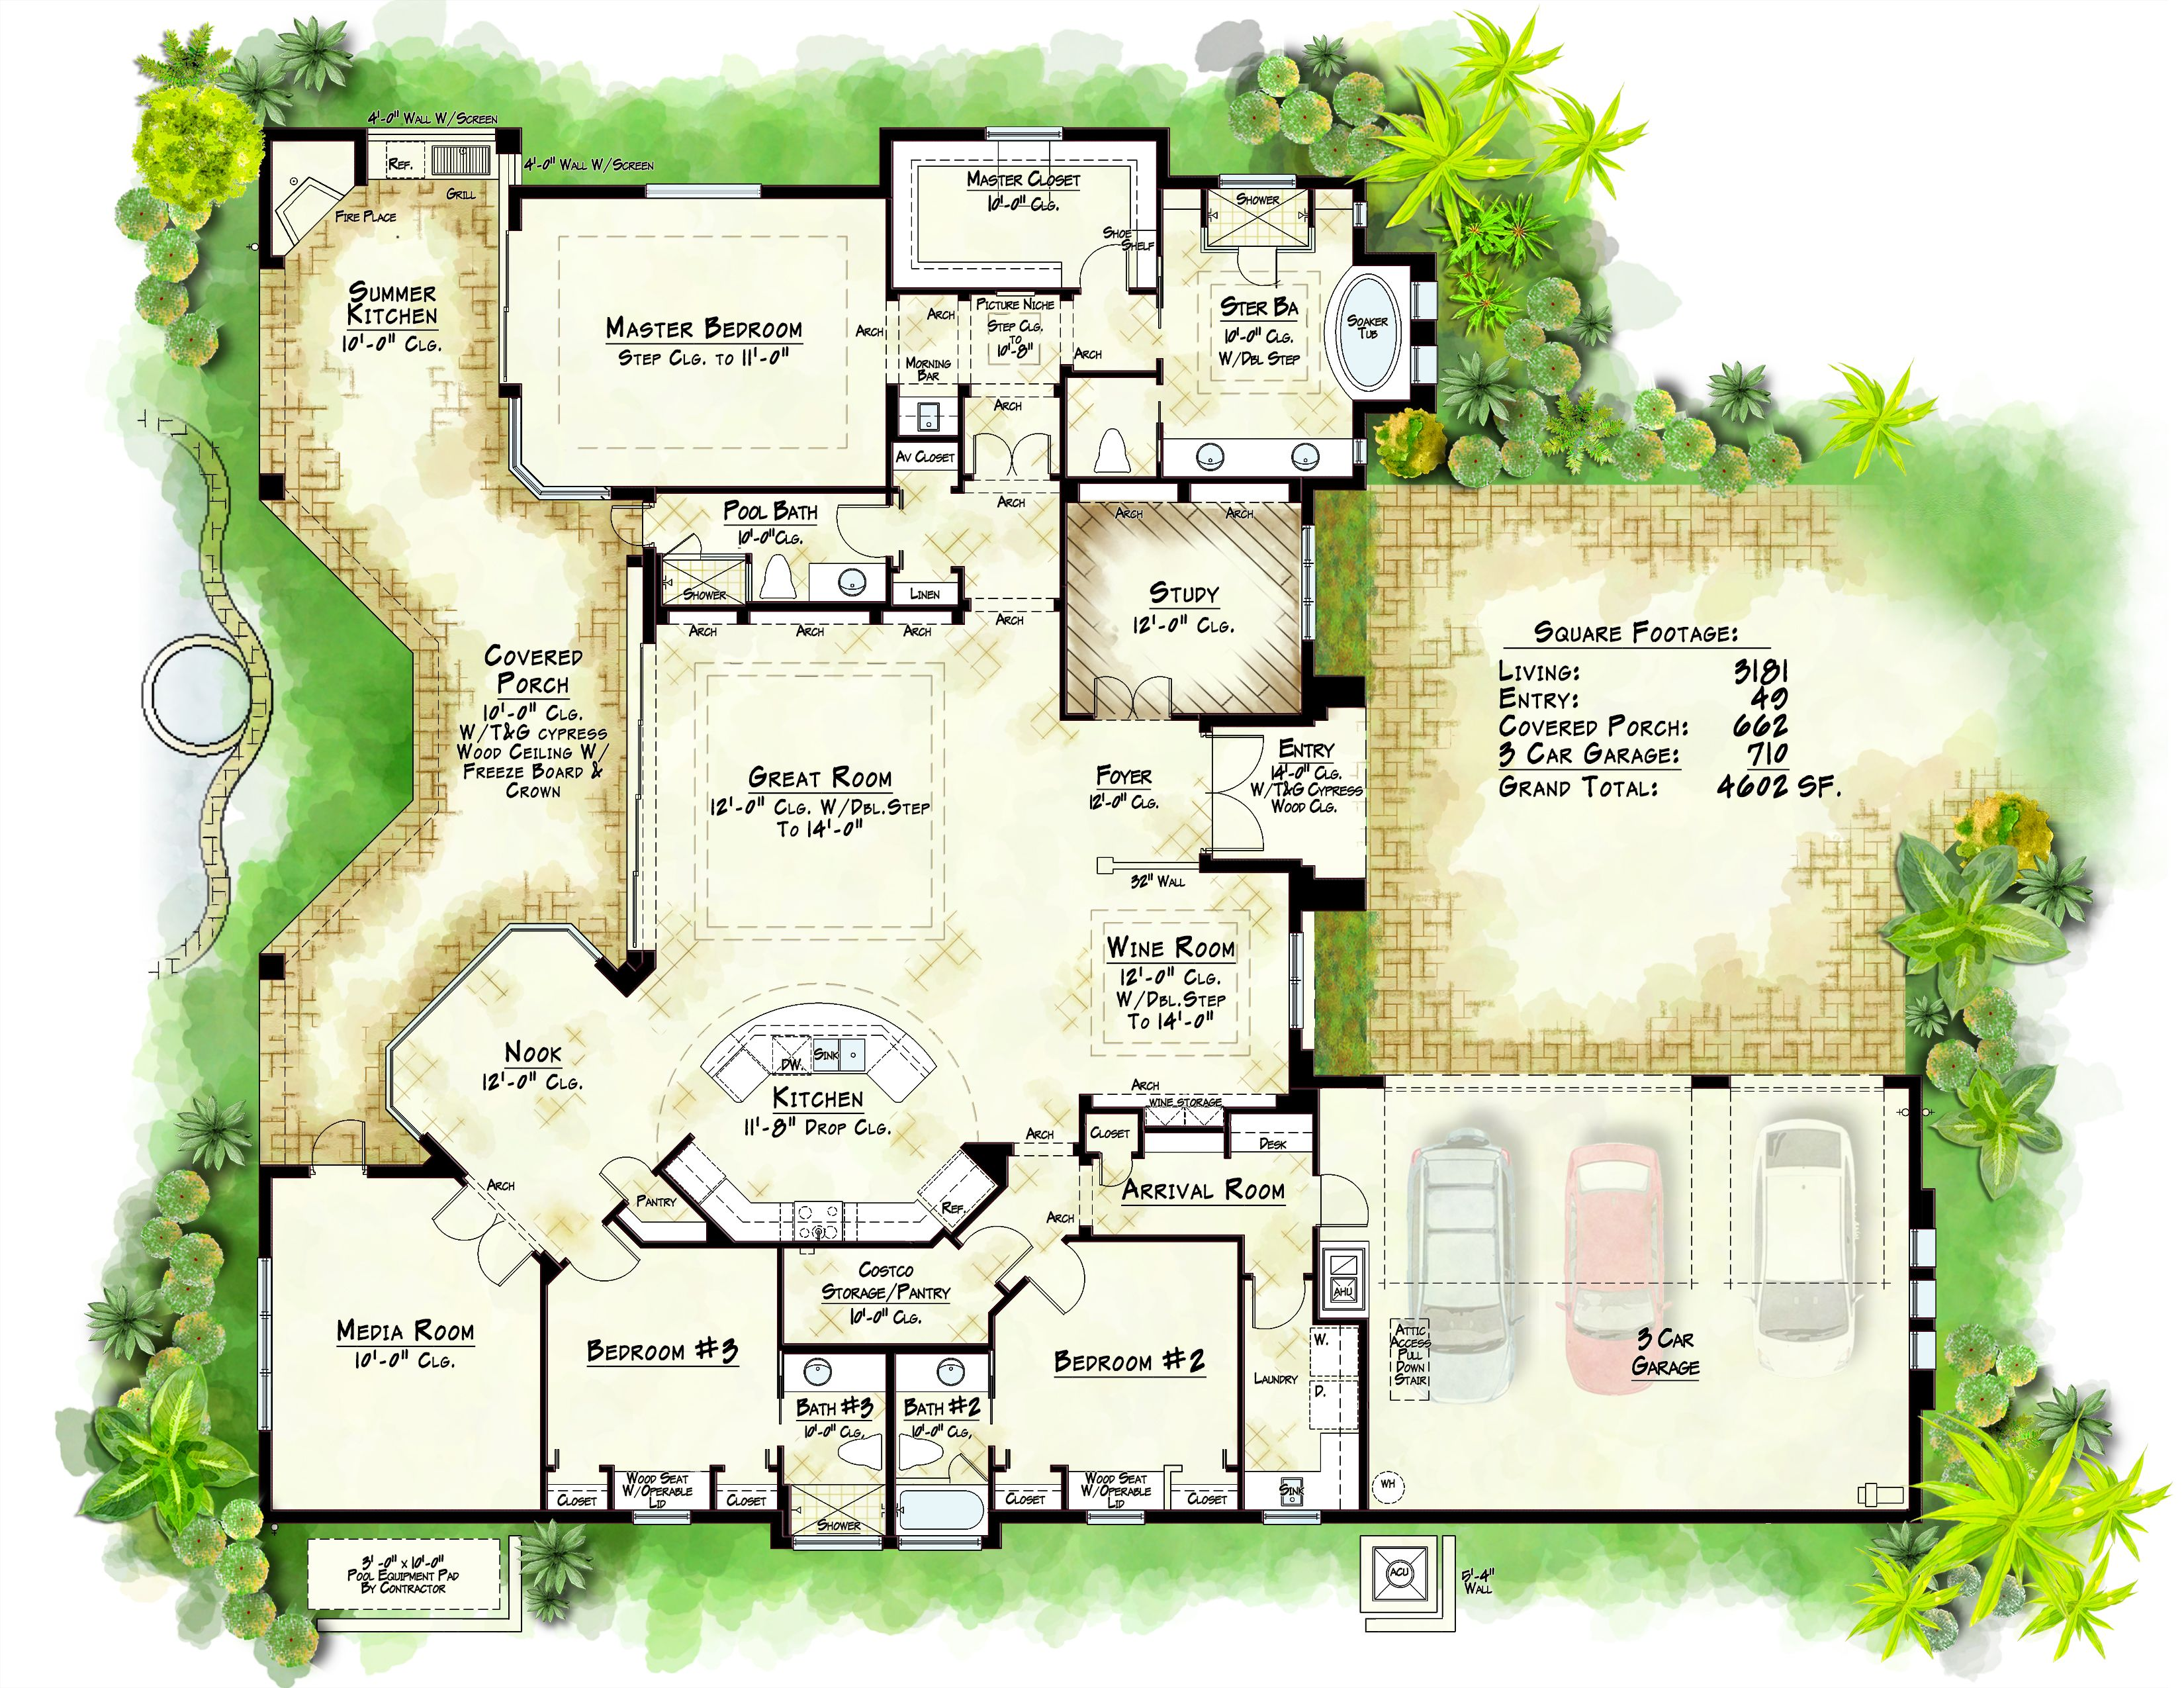 Another great plan christopher burton homes www for How to build your own house in florida